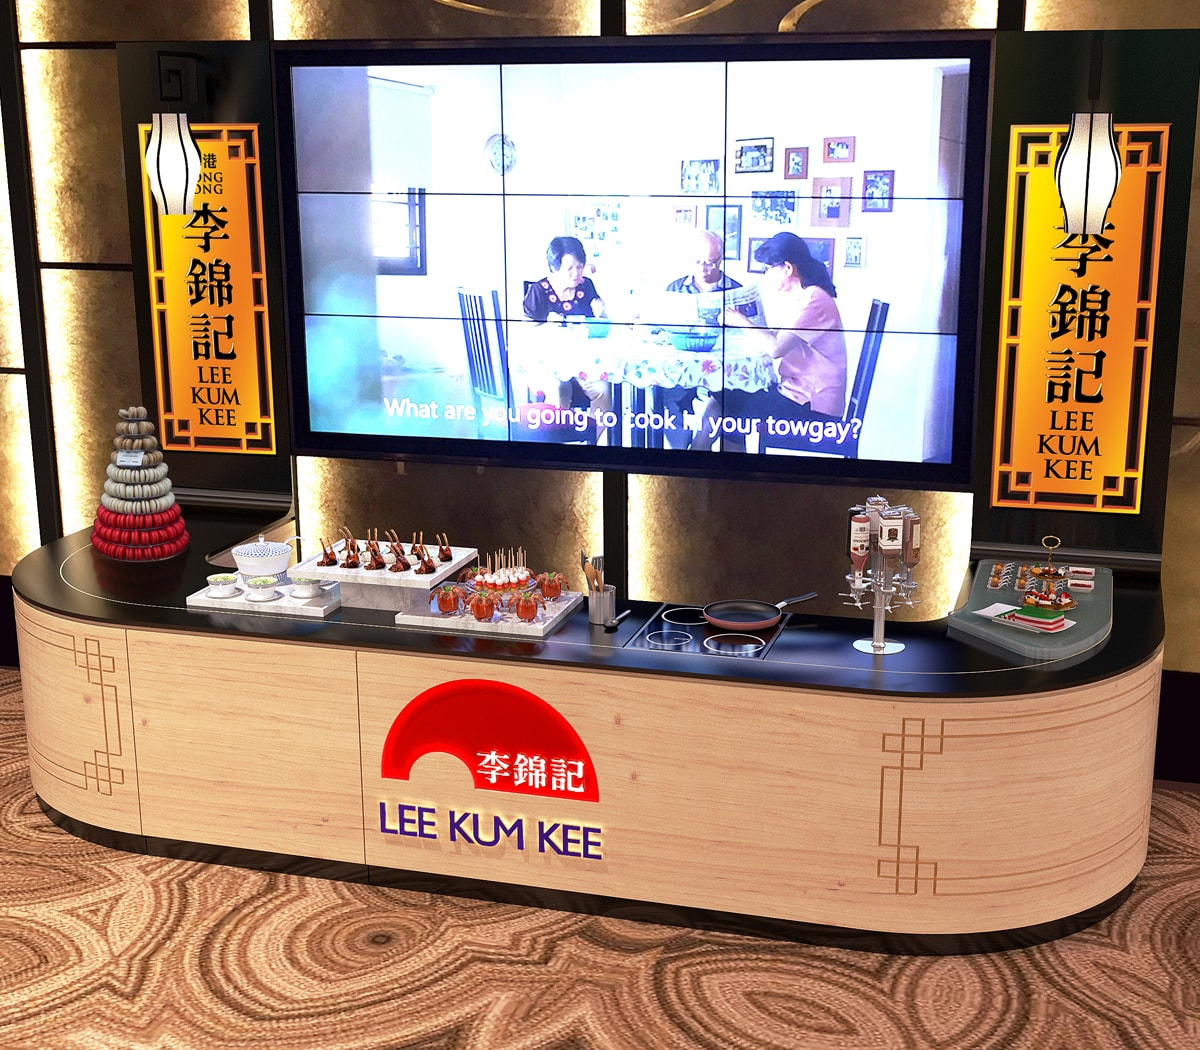 Fuchsia Creative developed a exhibition stand for Lee Kum Kee with a live kitchen